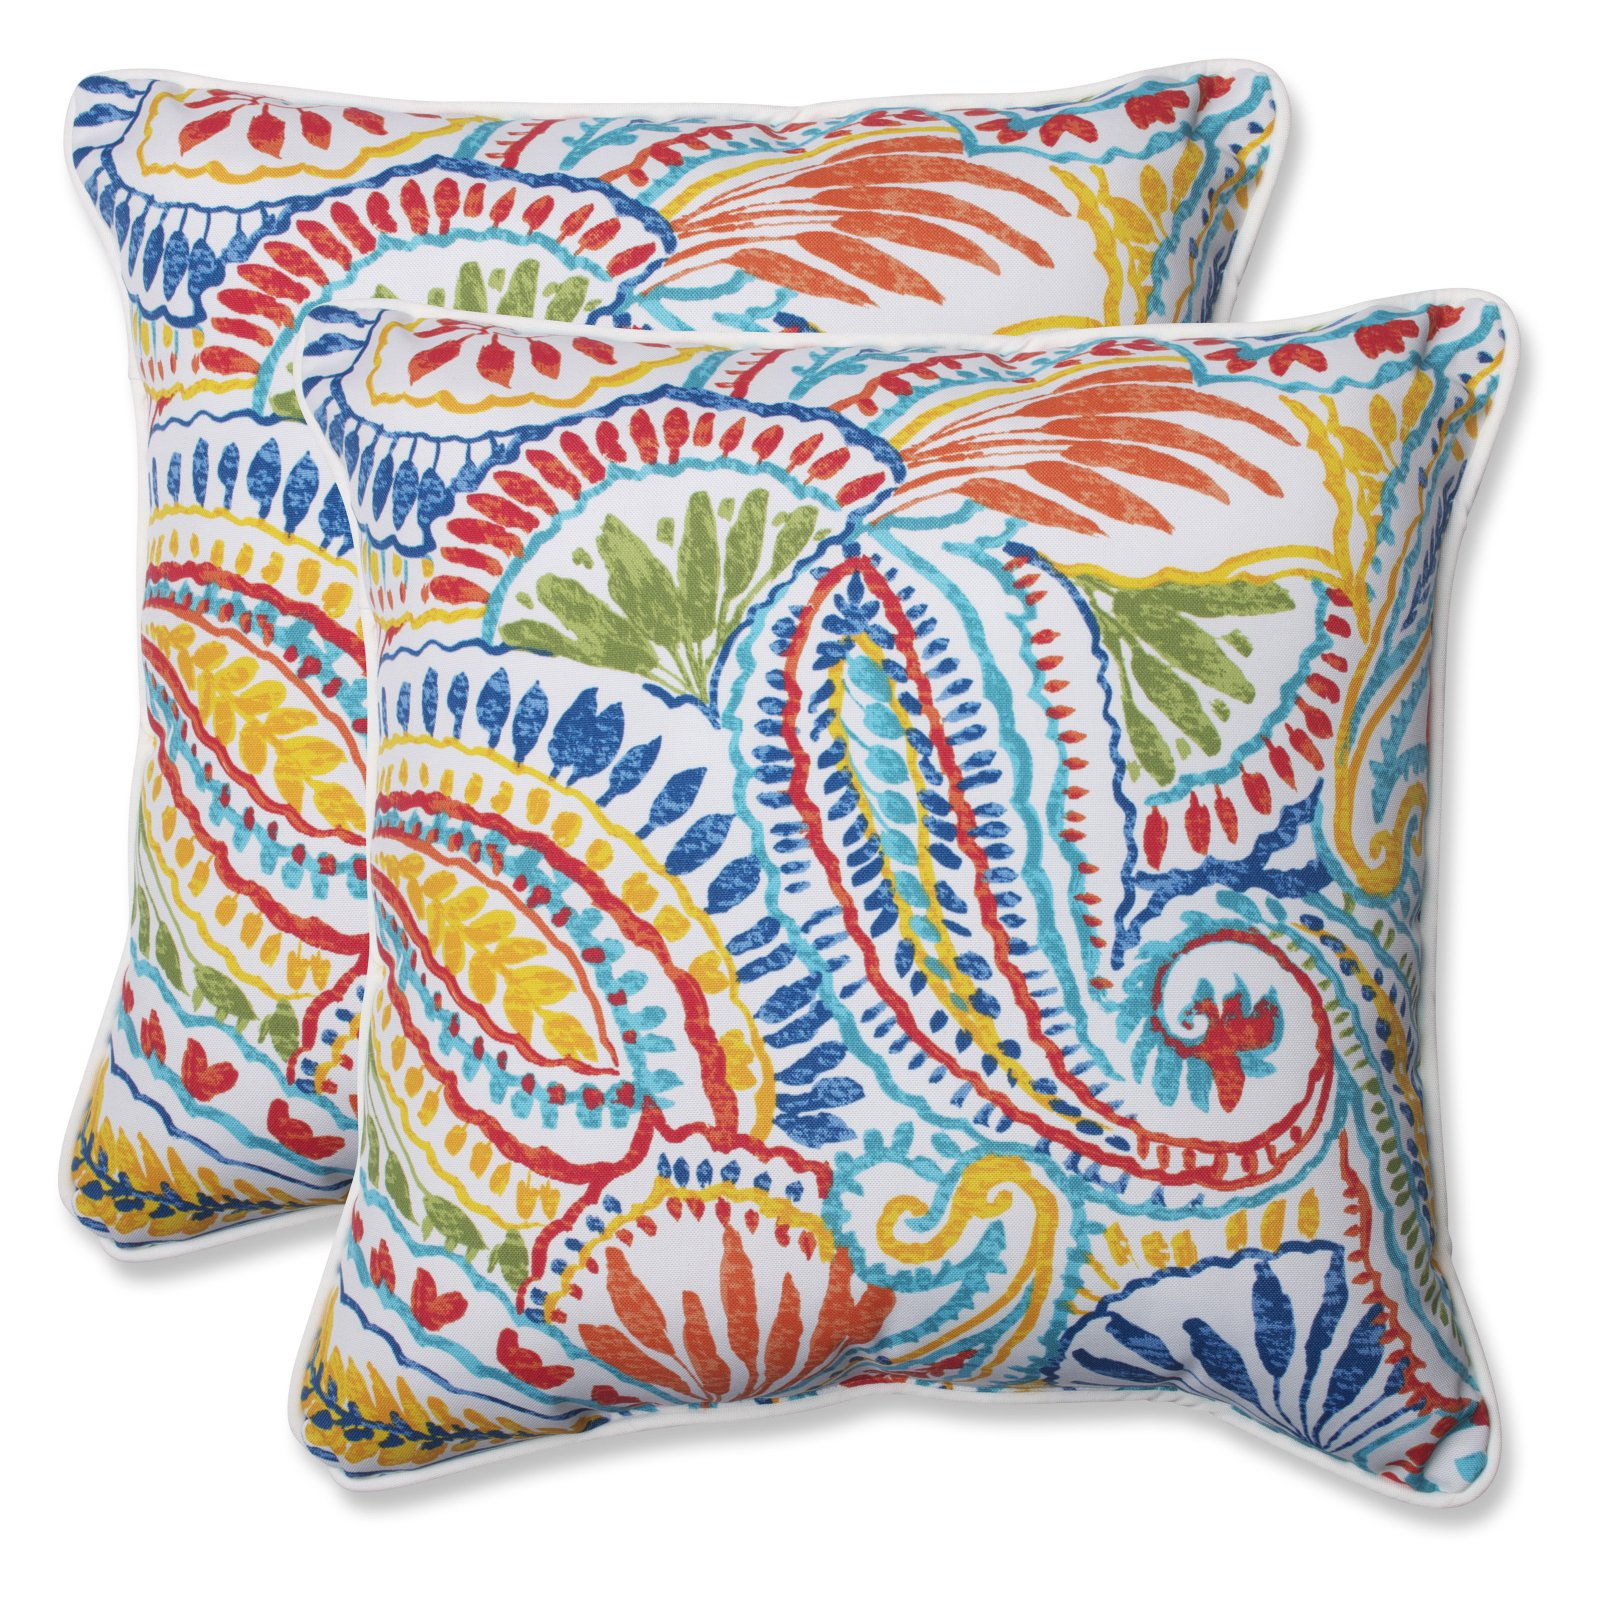 Pillow Perfect Outdoor/ Indoor Ummi Multi 18.5-inch Throw Pillow (Set of 2)